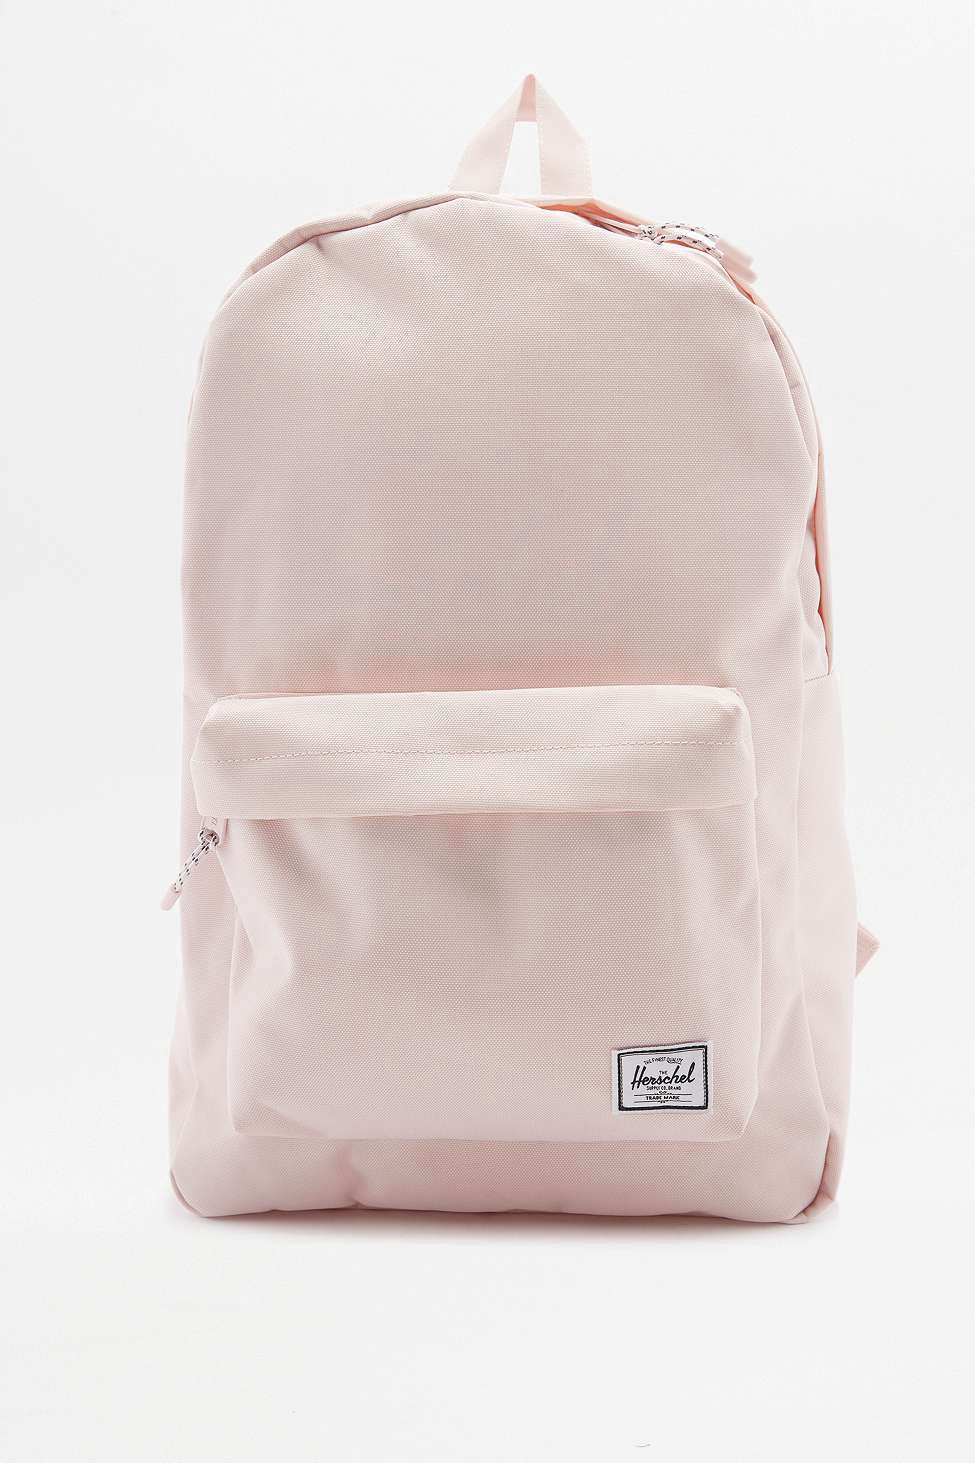 Herschel Supply Co. X Uo Cloud Pink Classic Backpack - Womens All - Urban  Outfitters   reve b1f28c4213